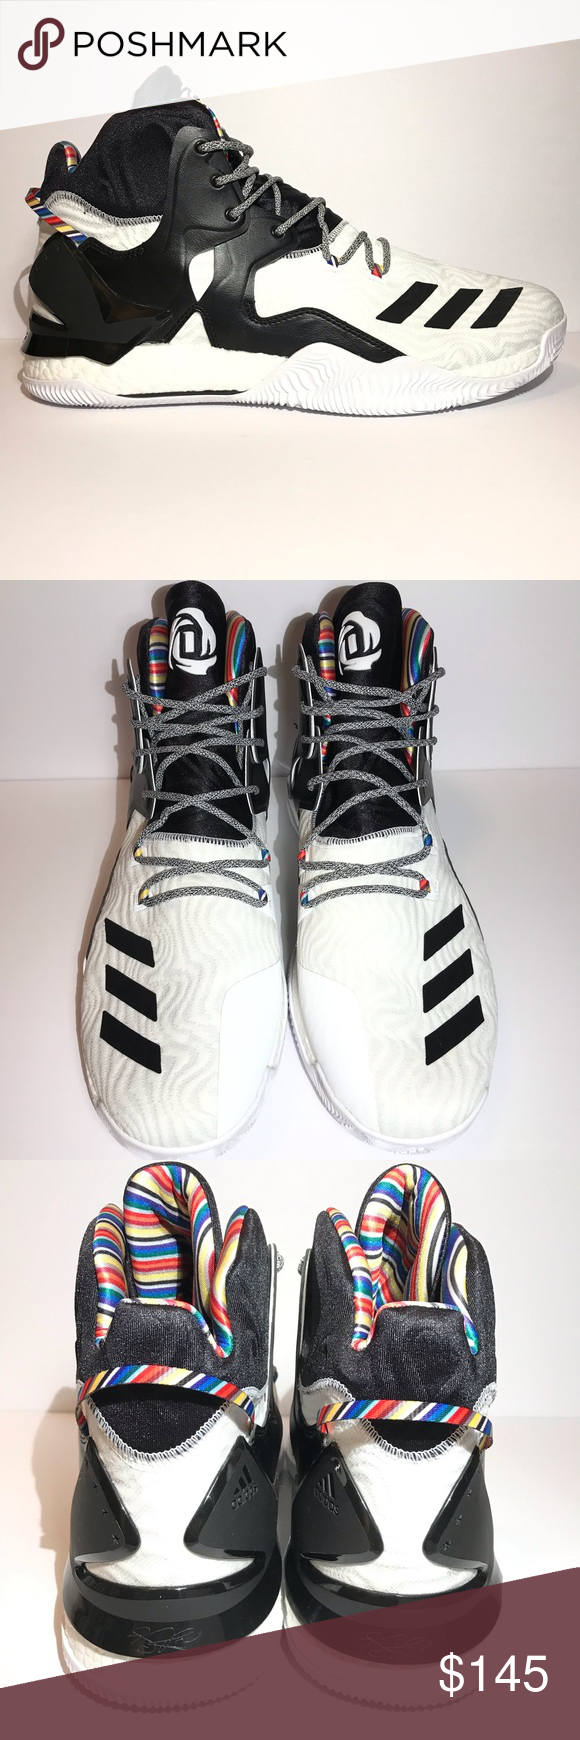 the latest 0d6f6 035c4 NEW Adidas D Rose 7 Boost BHM NWOT Never Worn Limited edition black history  month Arthur Ashe Style BY3475 Does not include box or hang tag adidas  Shoes ...